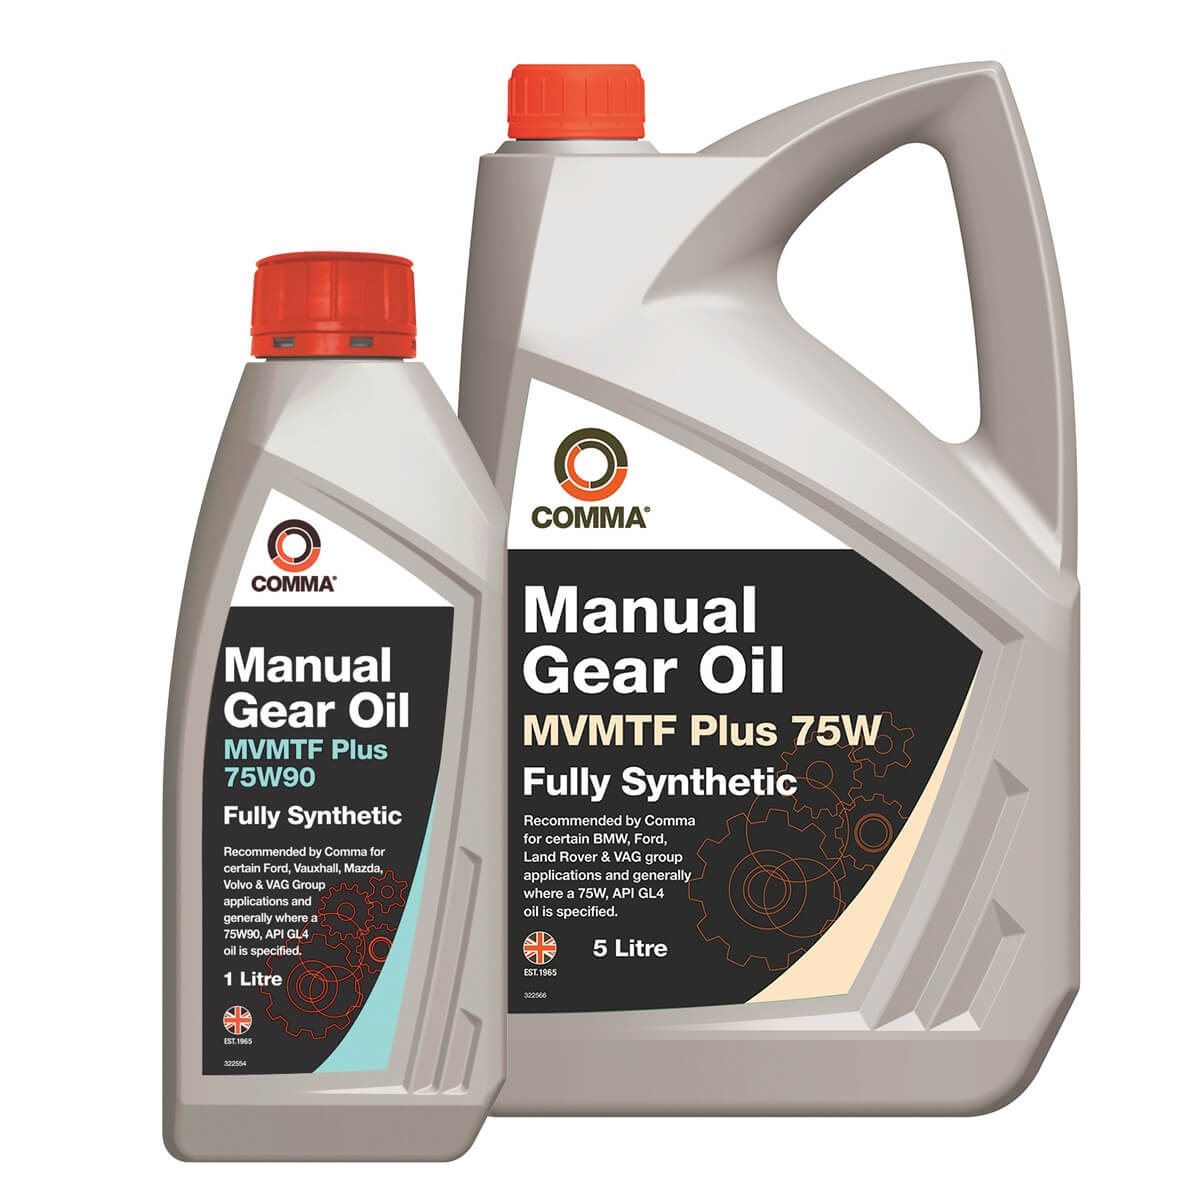 CADILLAC CTS Manual Transmission Oil